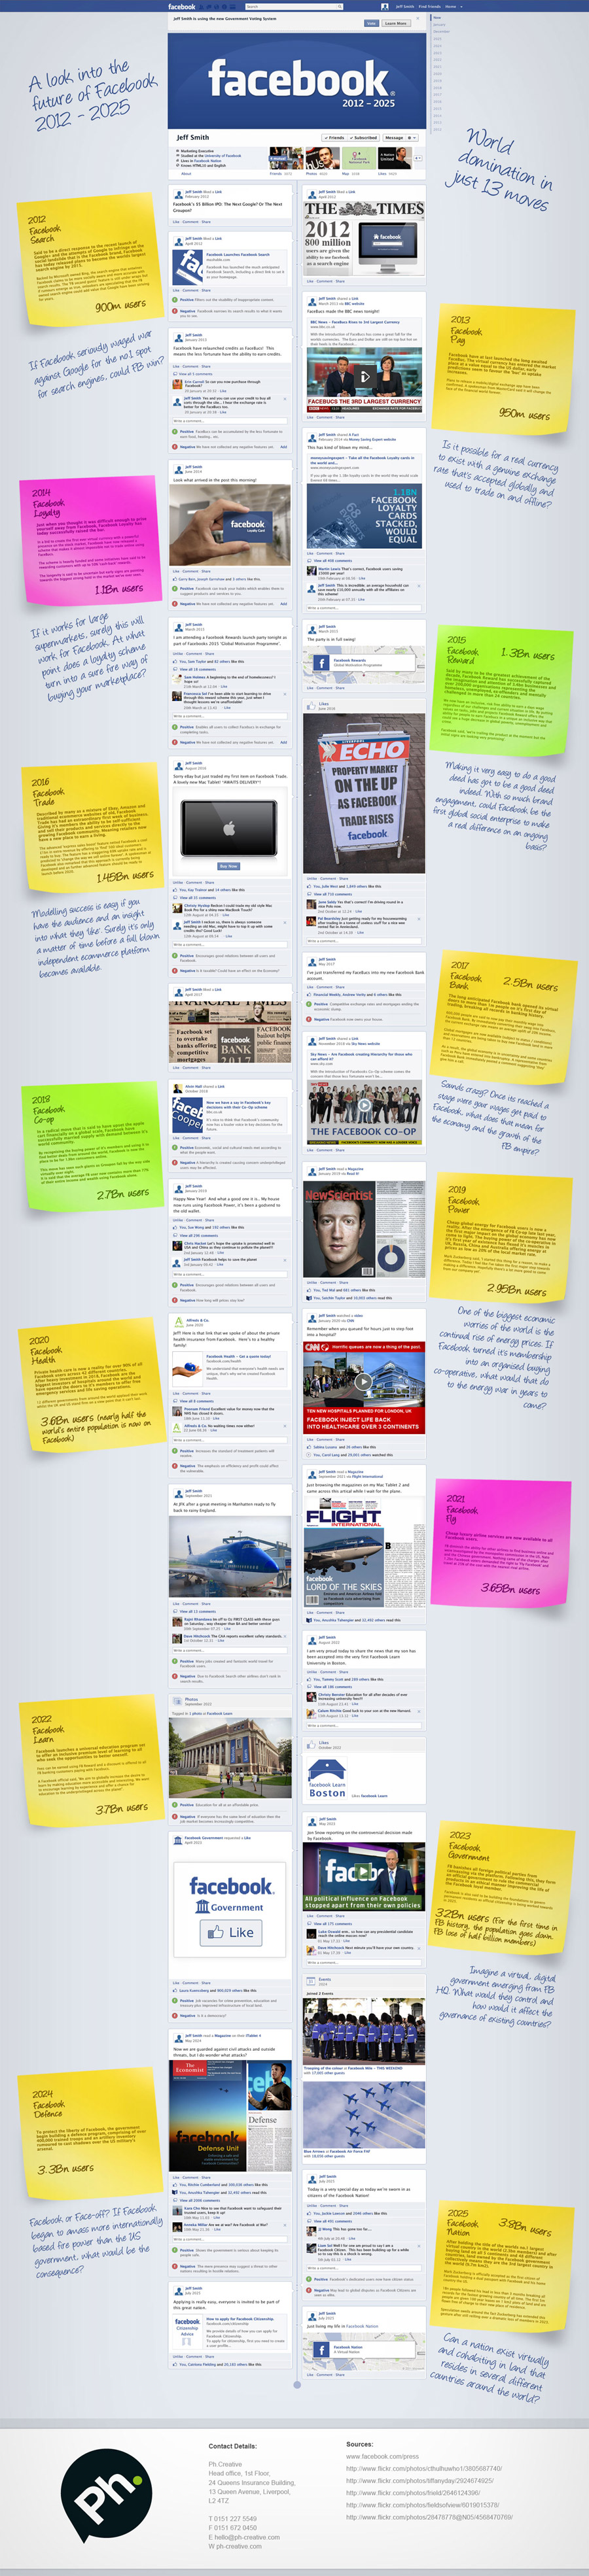 A-Look-Into-The-Future-Of-Facebook-2012-2015-infographic